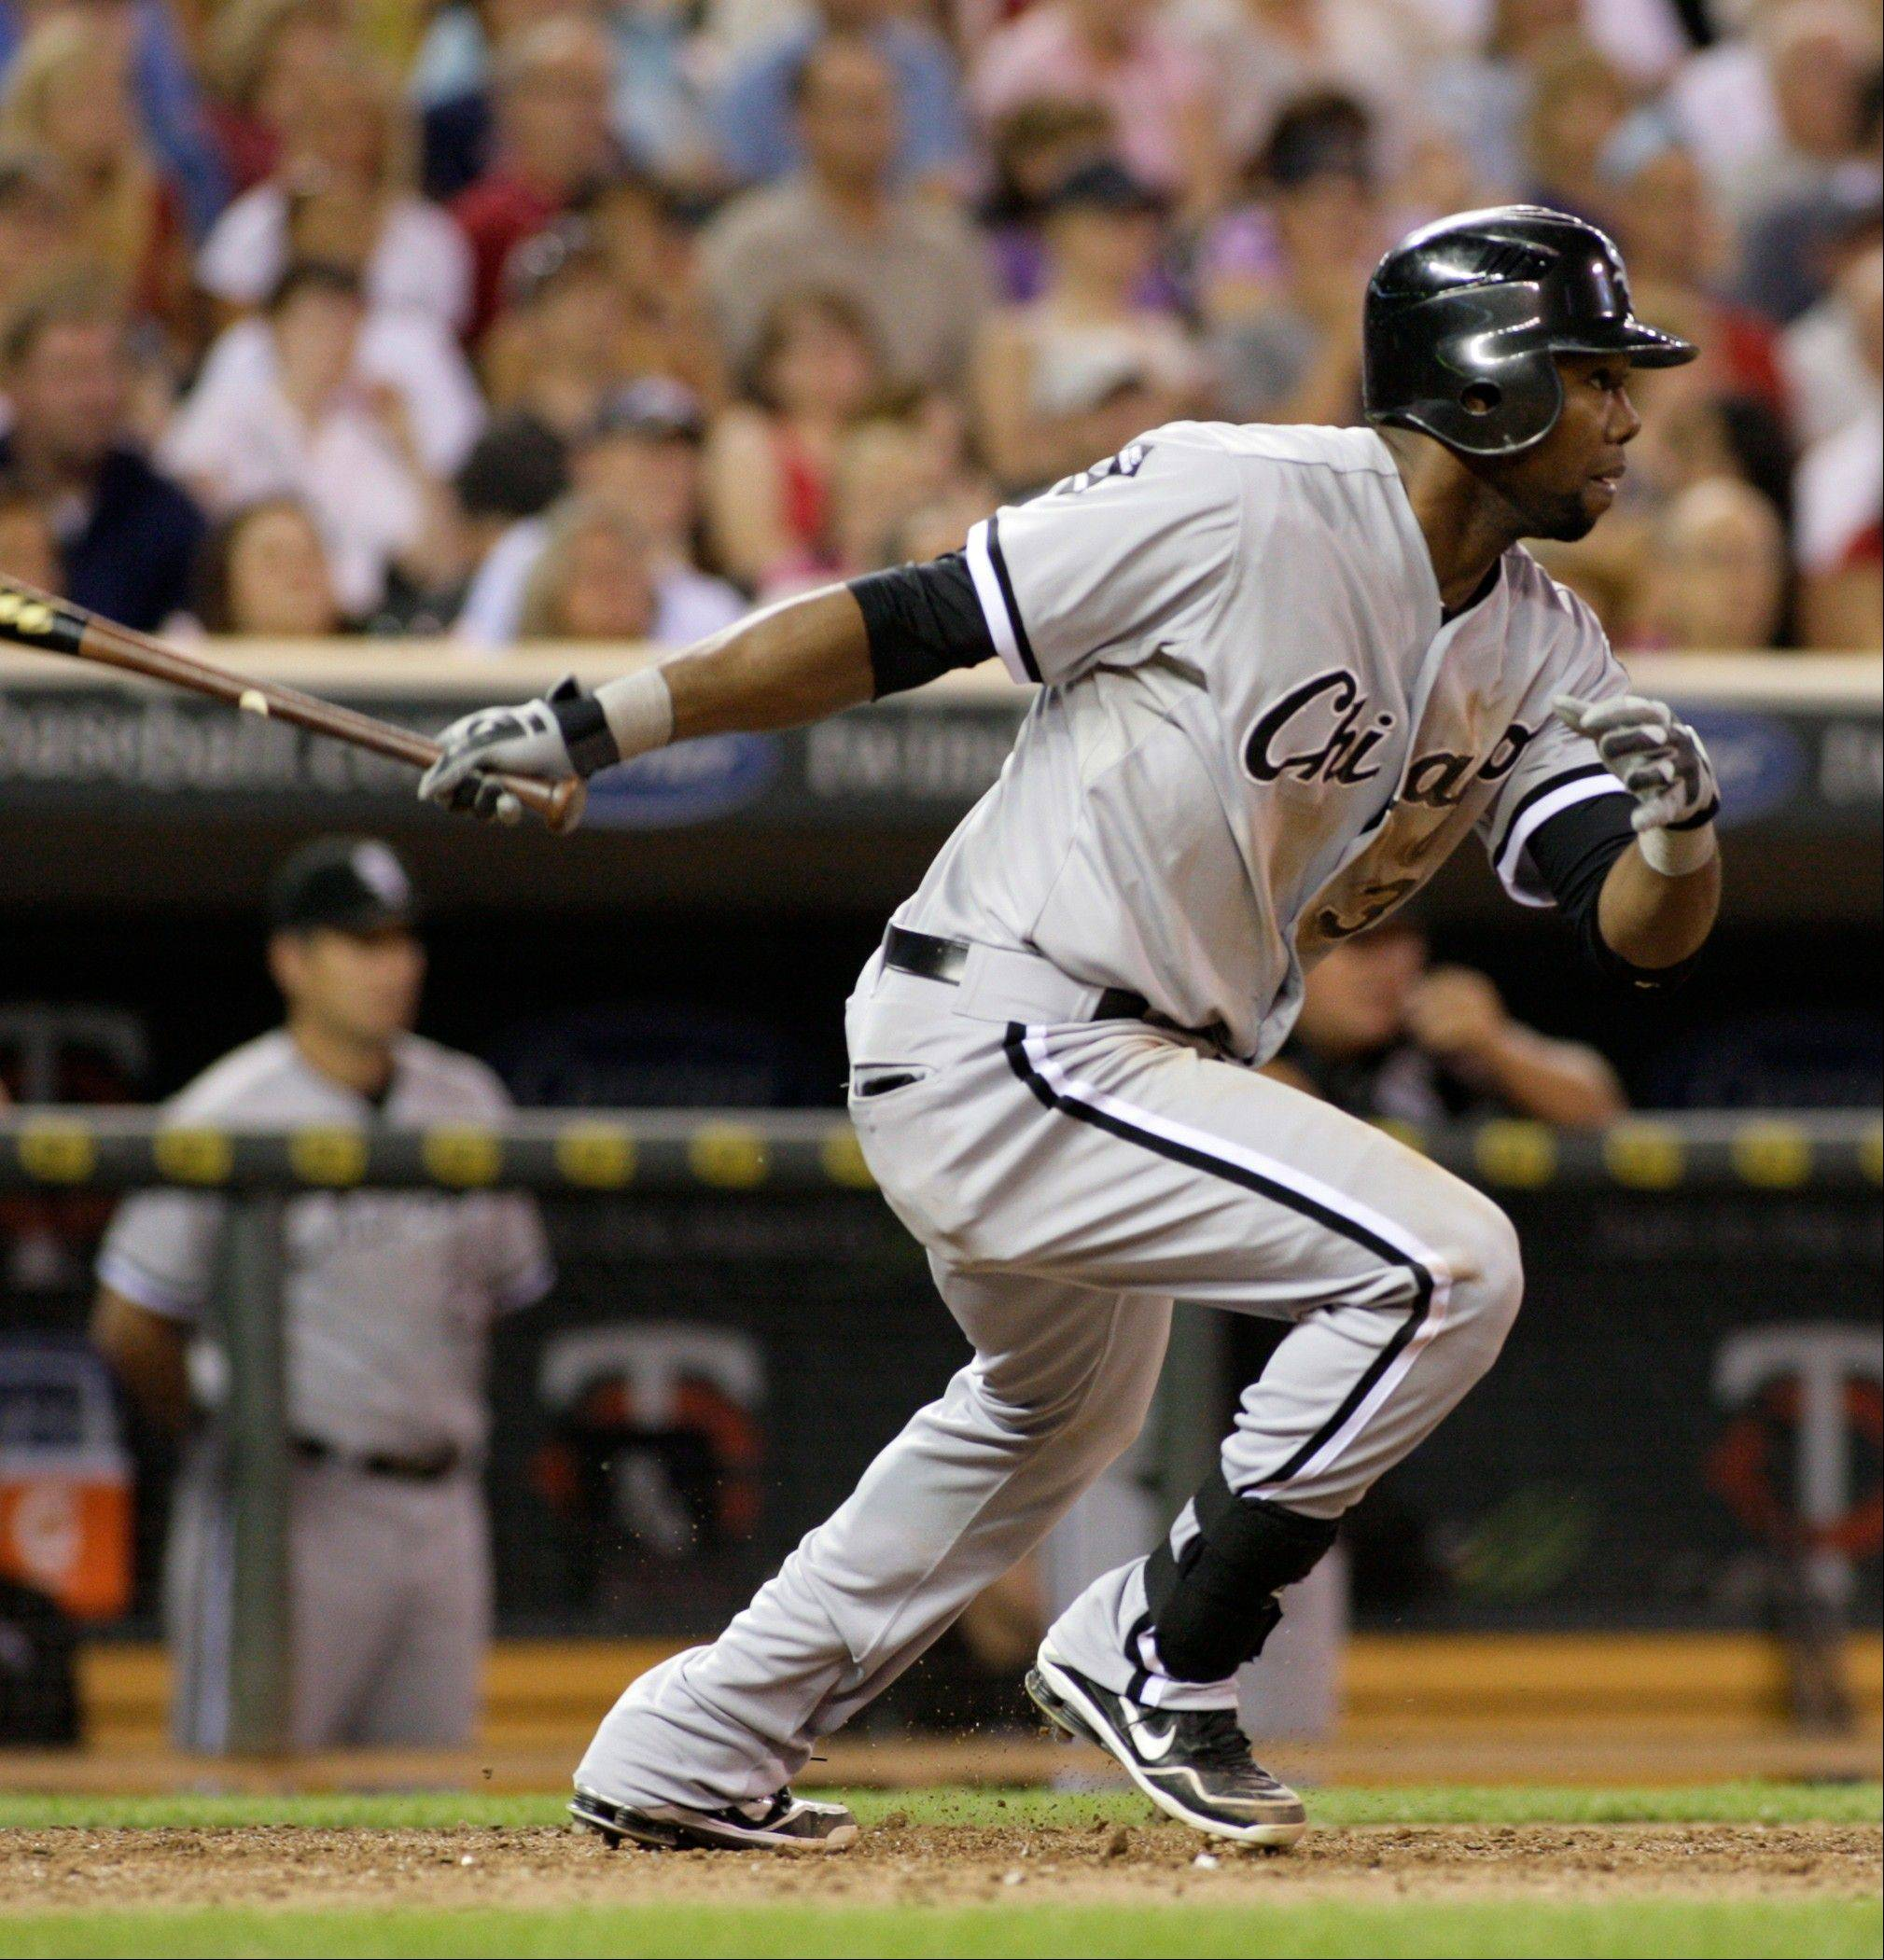 Center fielder Alejandro De Aza has a solid .351 on-base percentage leading off for the White Sox this season.